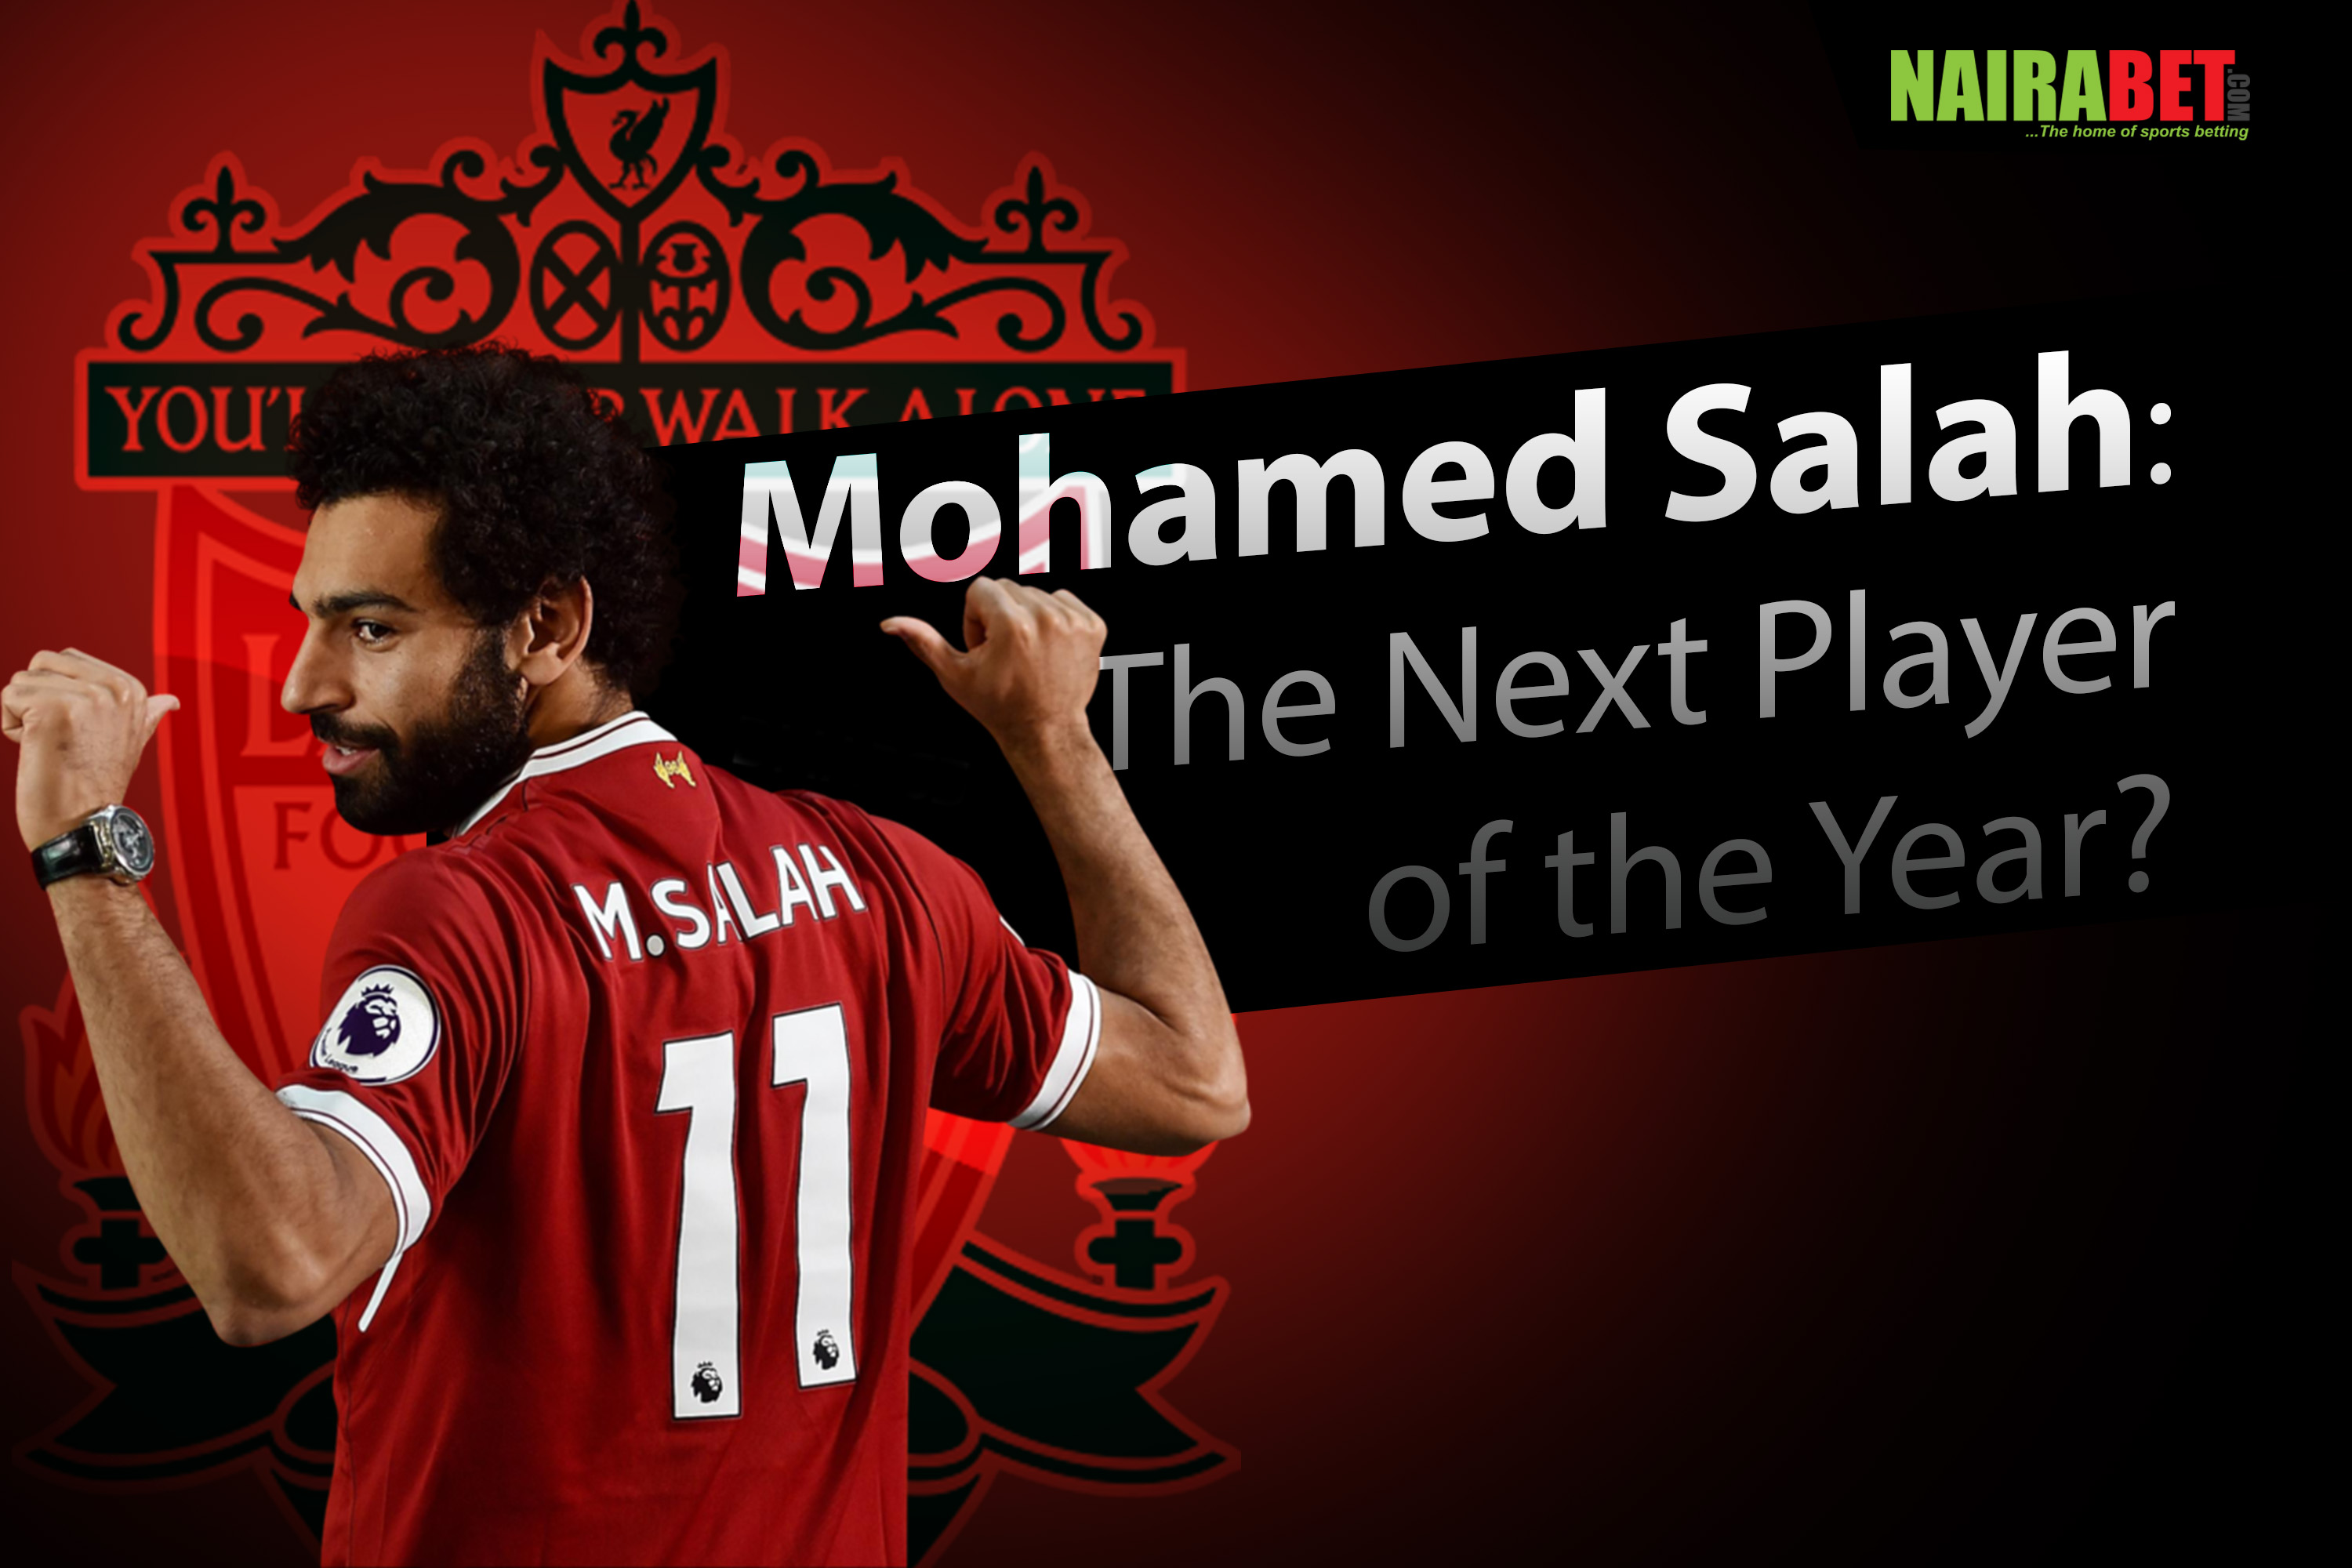 salah next player of the year